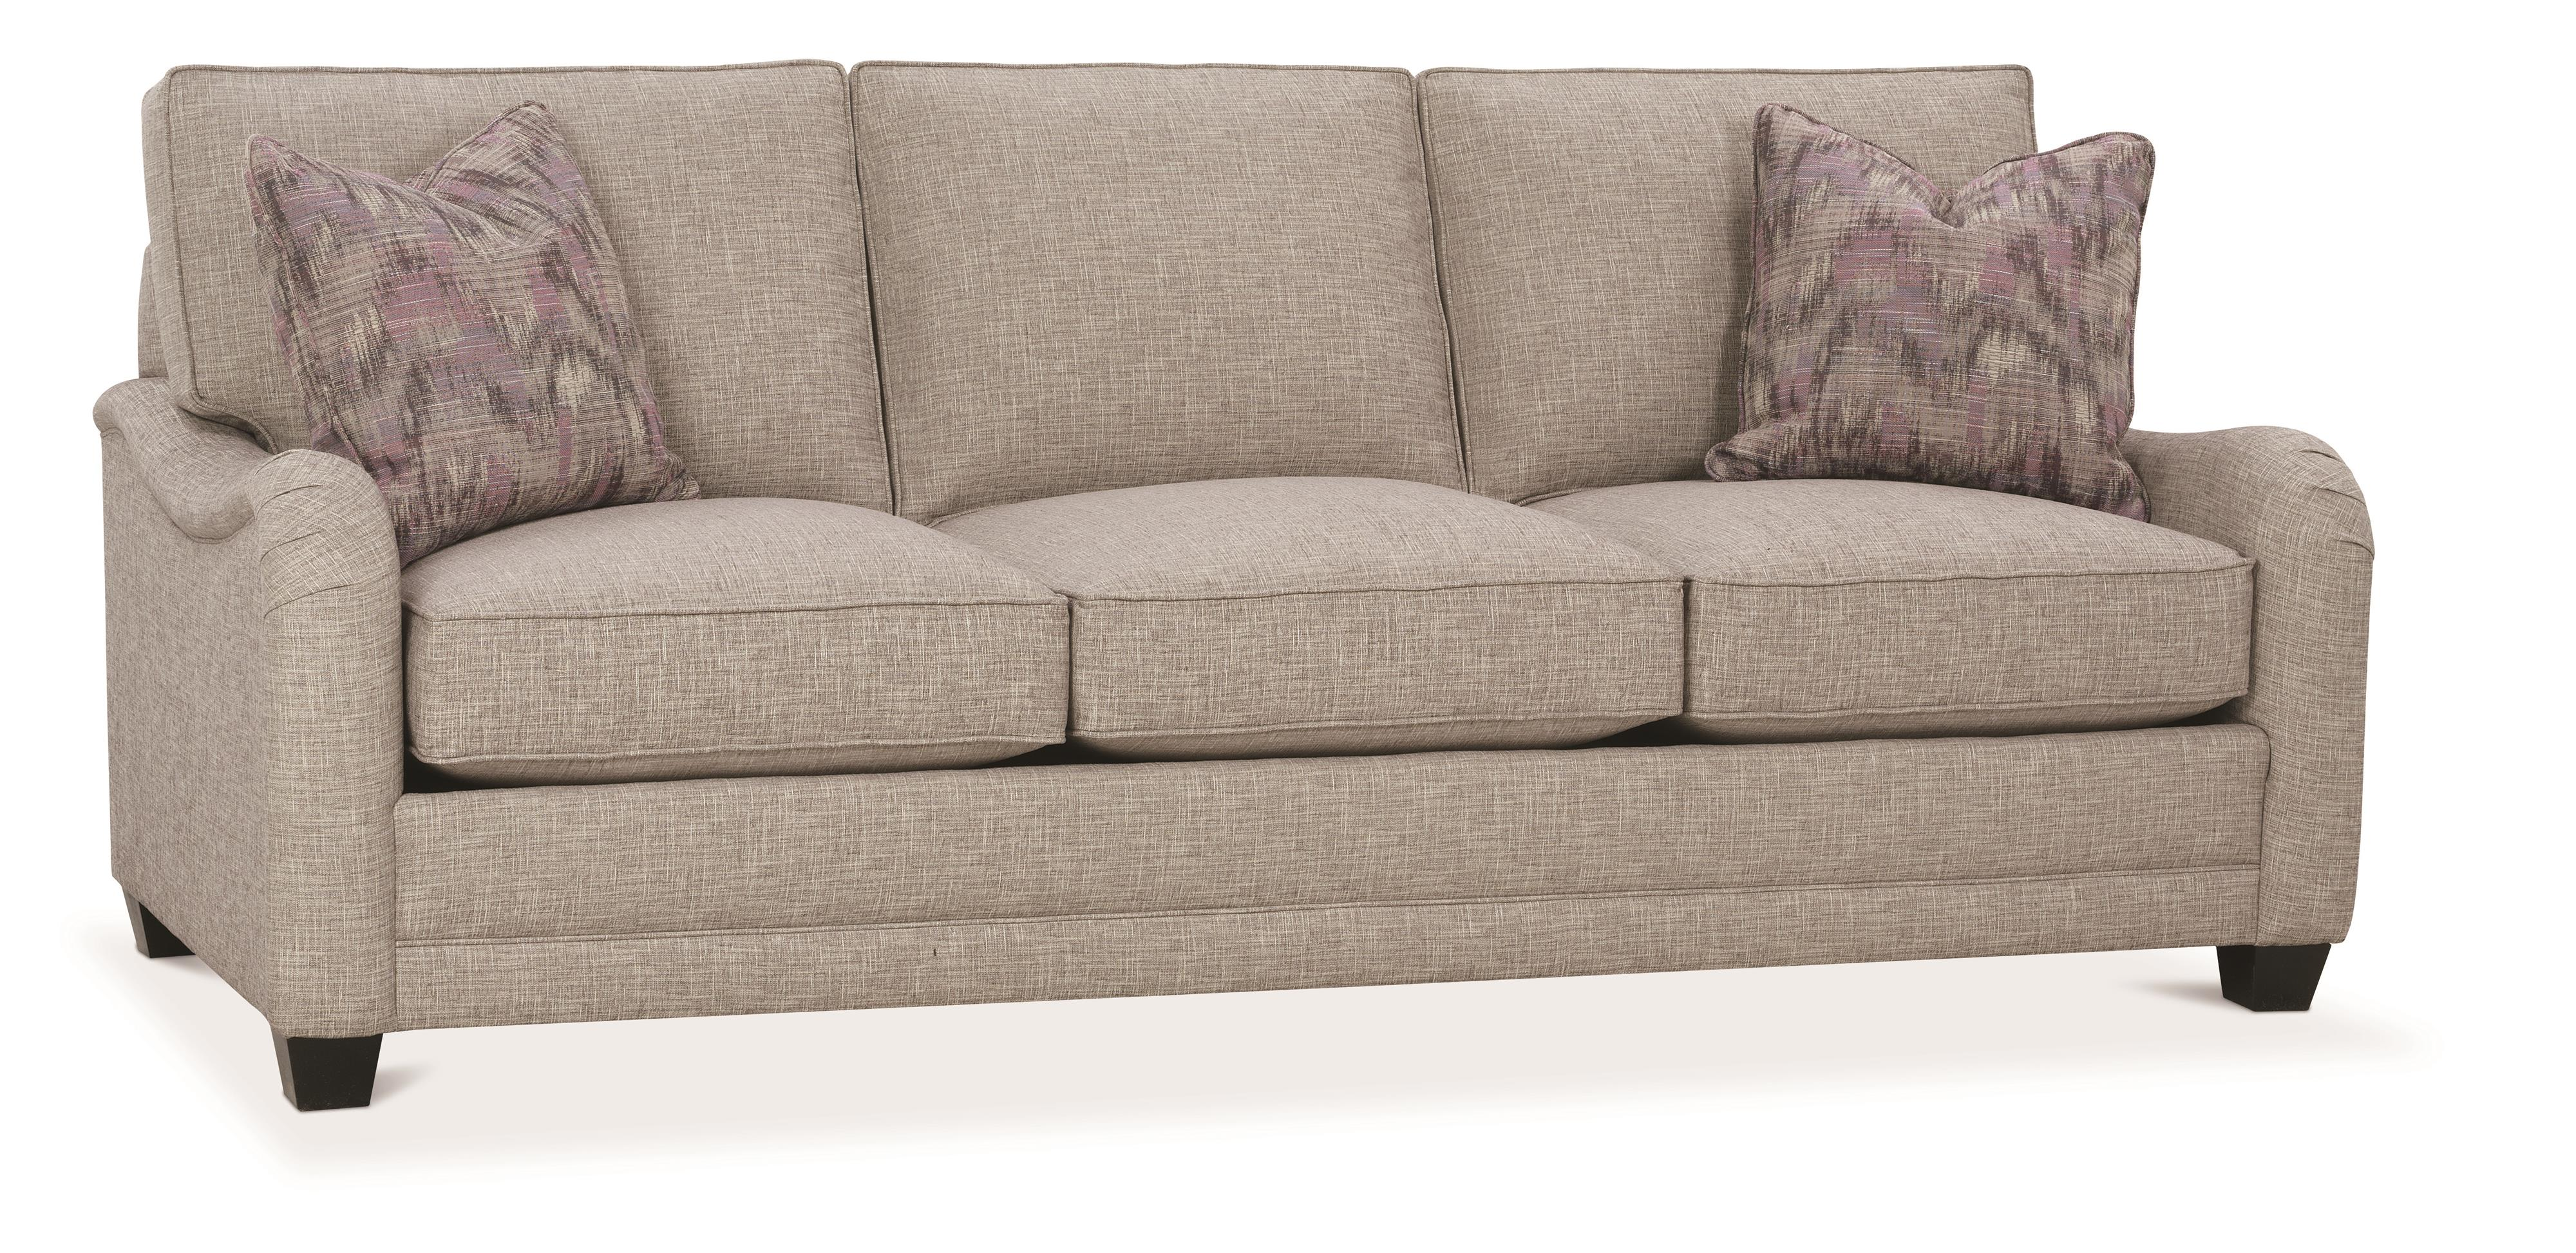 Rowe My Style Traditional Sofa - Item Number: BE200-K-003-14637-04